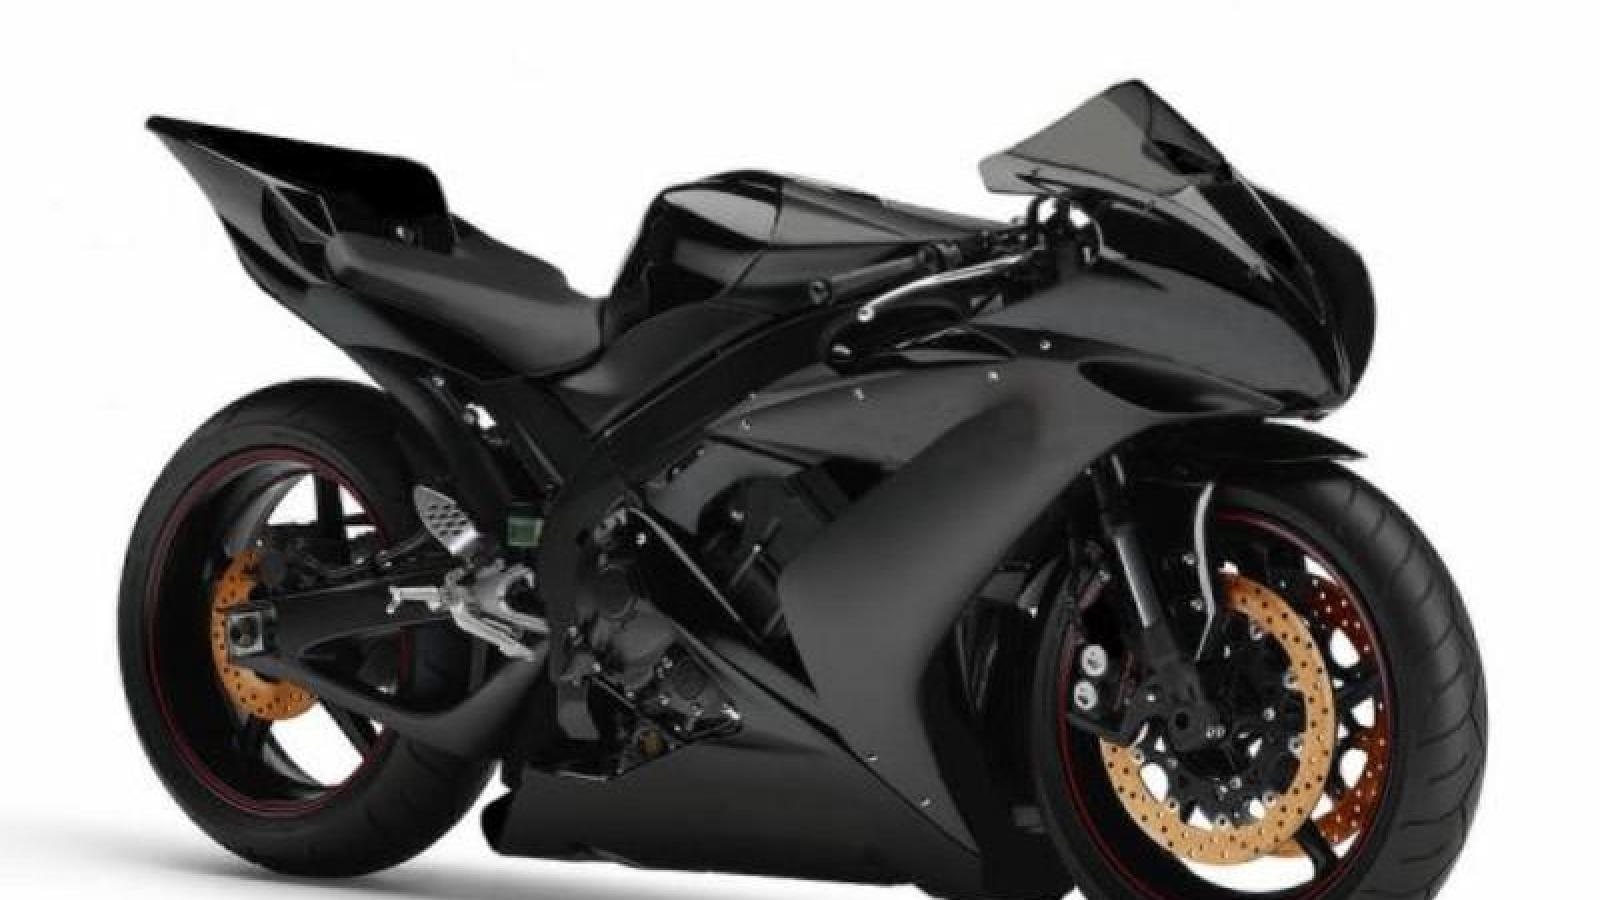 2015 yamaha r1 service manual pdf